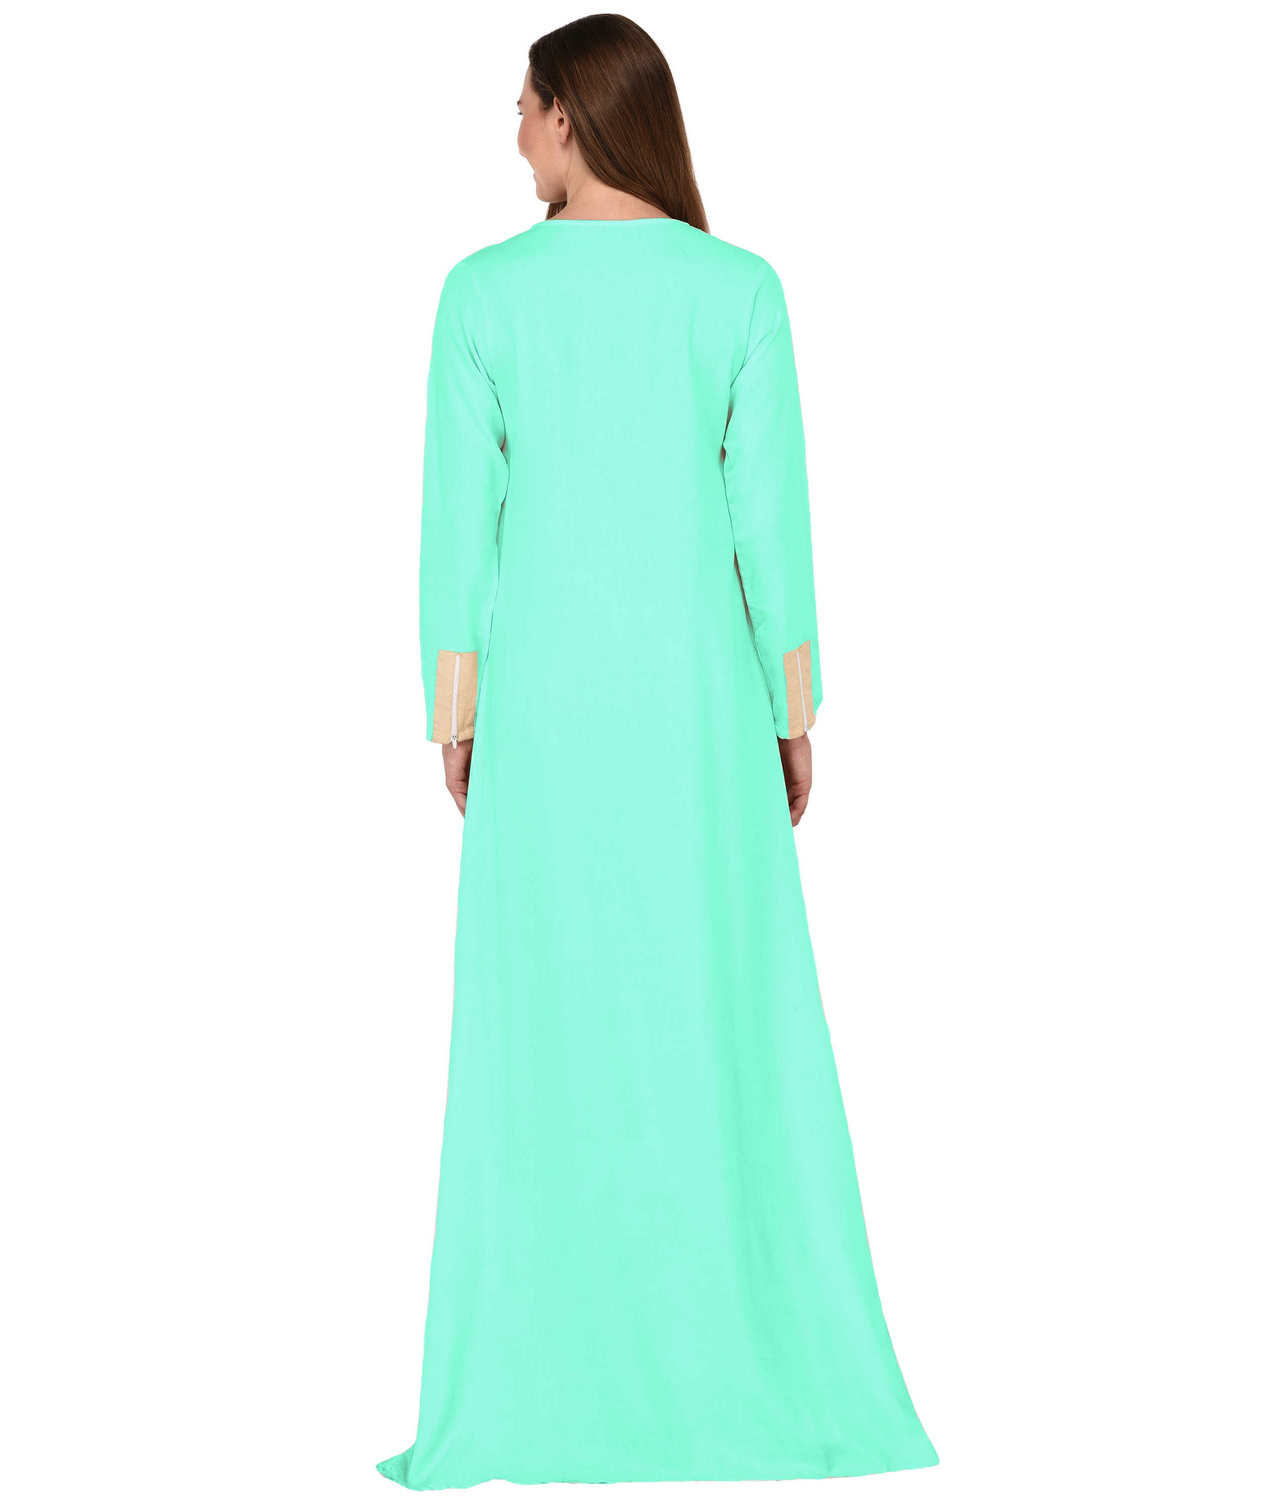 Abaya Style Empire Maxi Dress in Teal Green